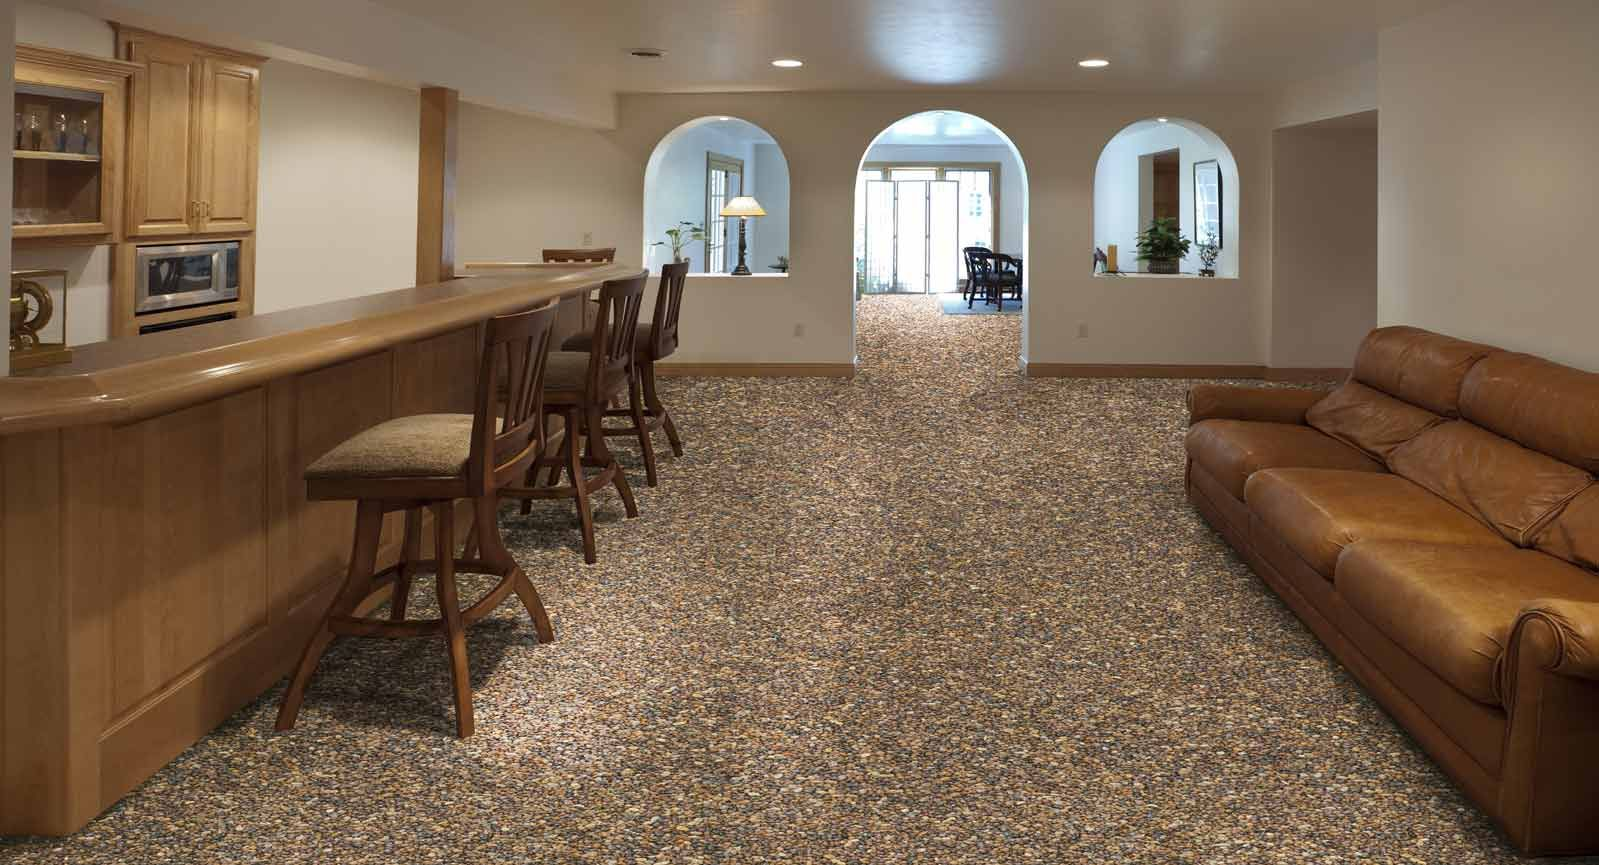 wohlforth floor blog unfinished flooring basement options tim warm and ideas durable